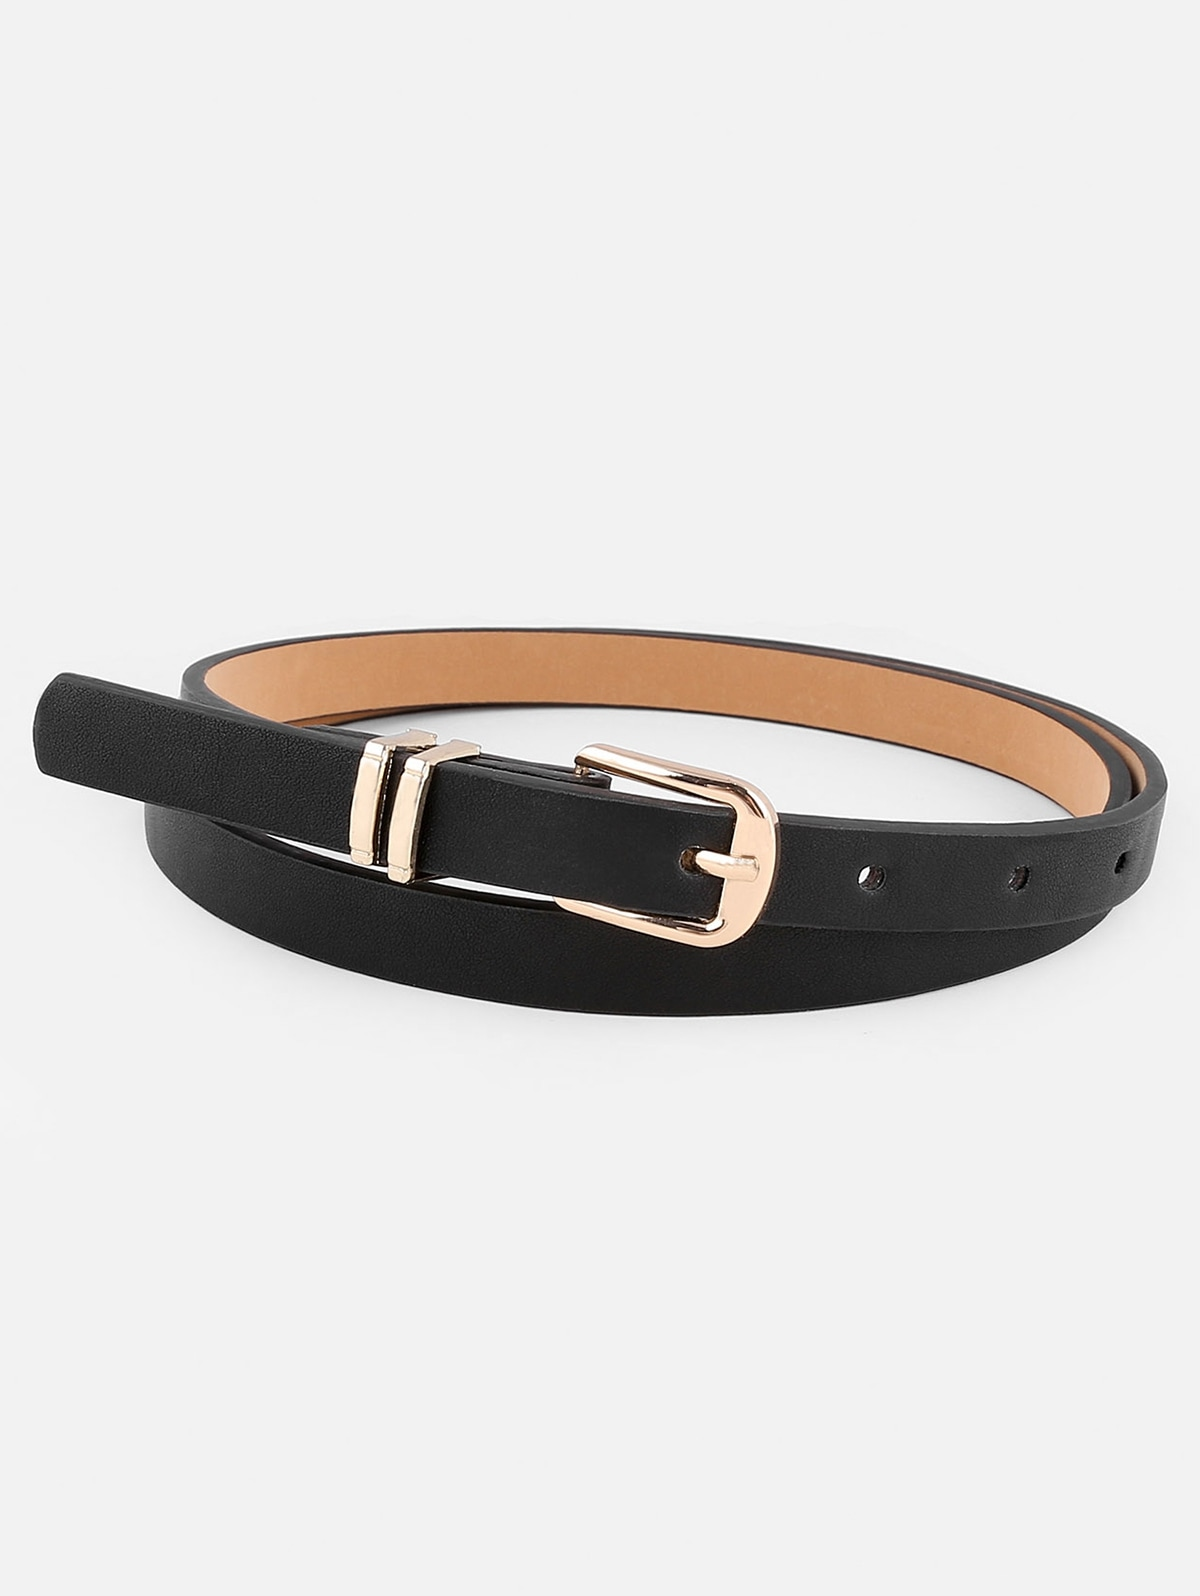 Stylish Metal Buckle Artificial Leather Pant Belt